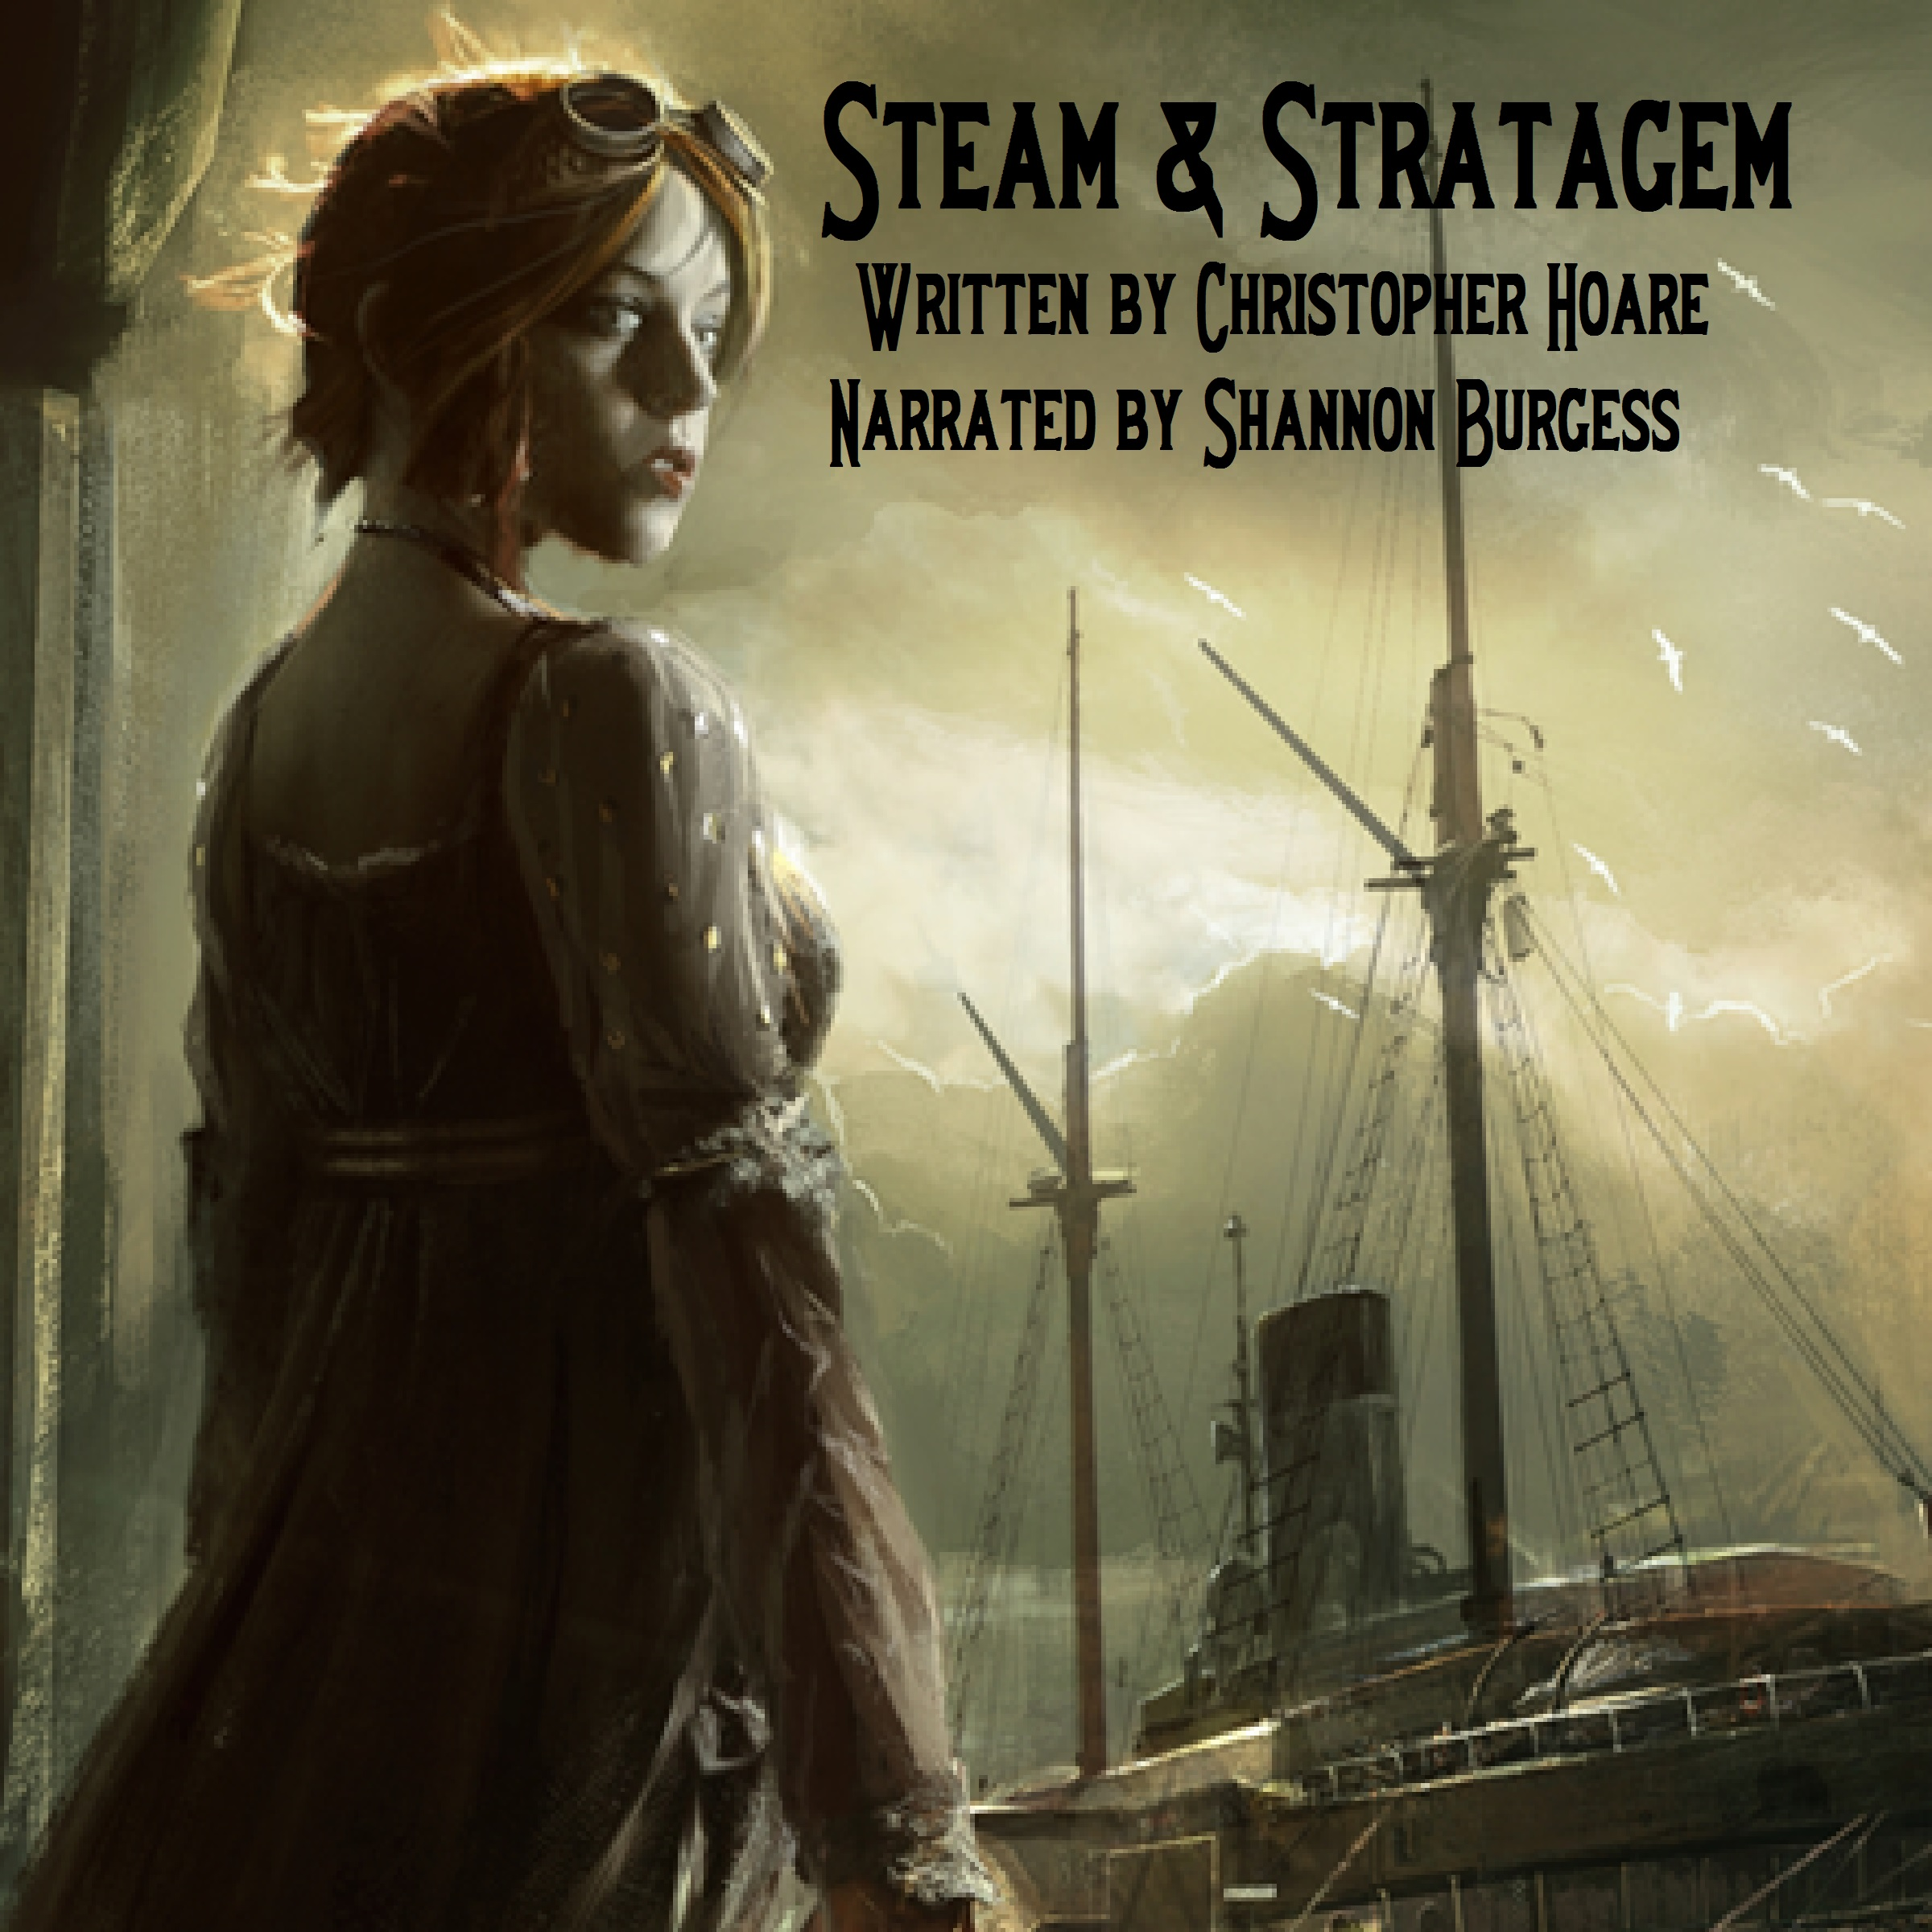 Steam and Stratagem